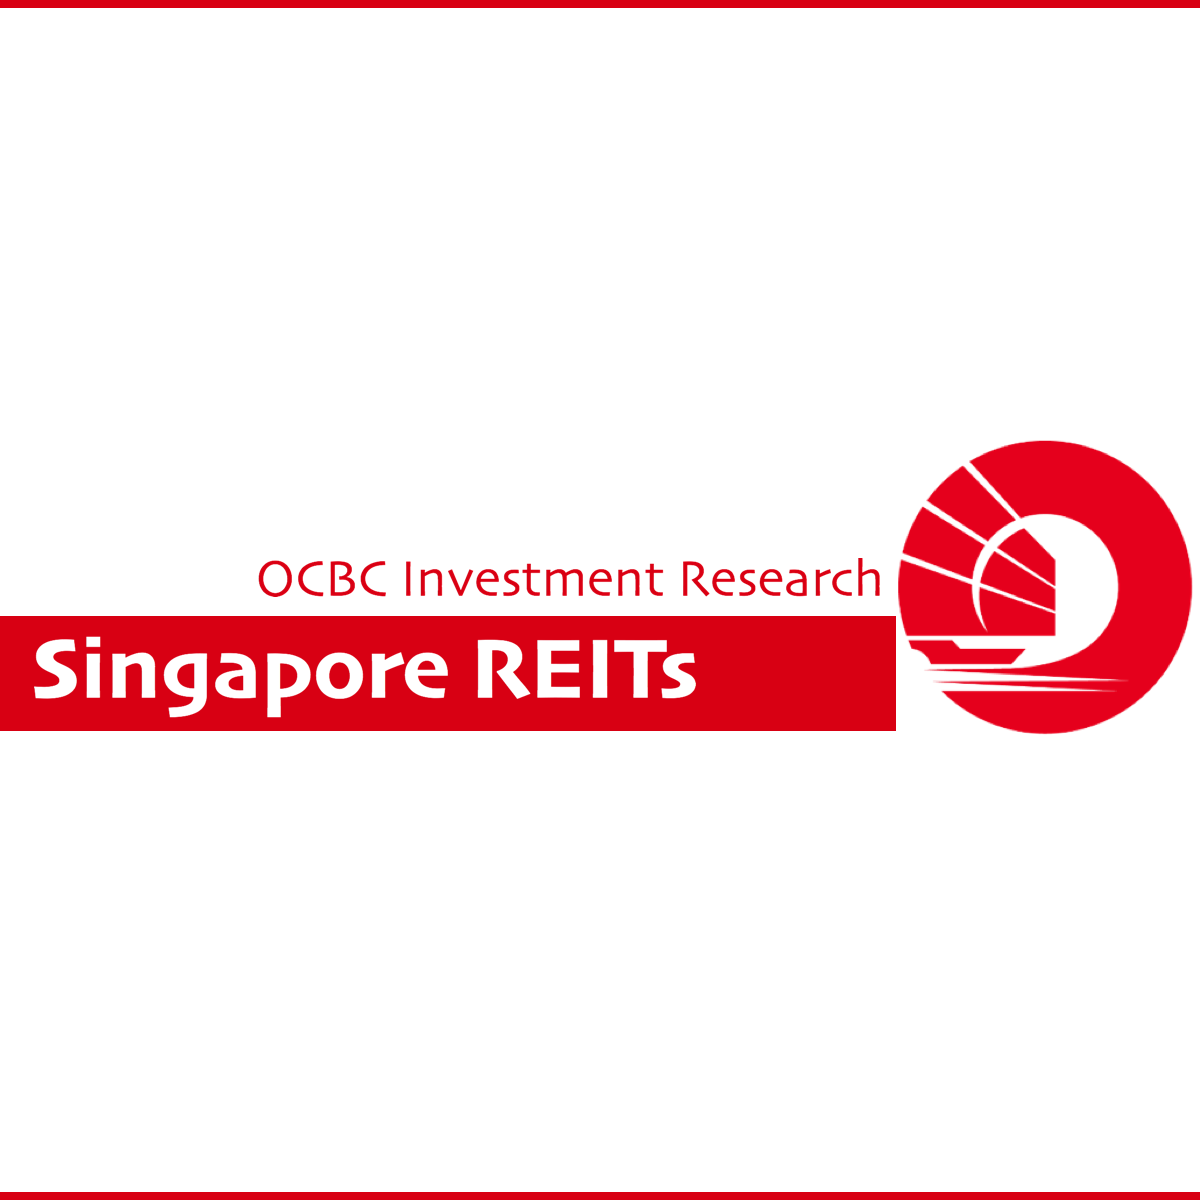 Singapore REITs - OCBC Investment 2017-08-22: No Major Surprises; Remain Selective